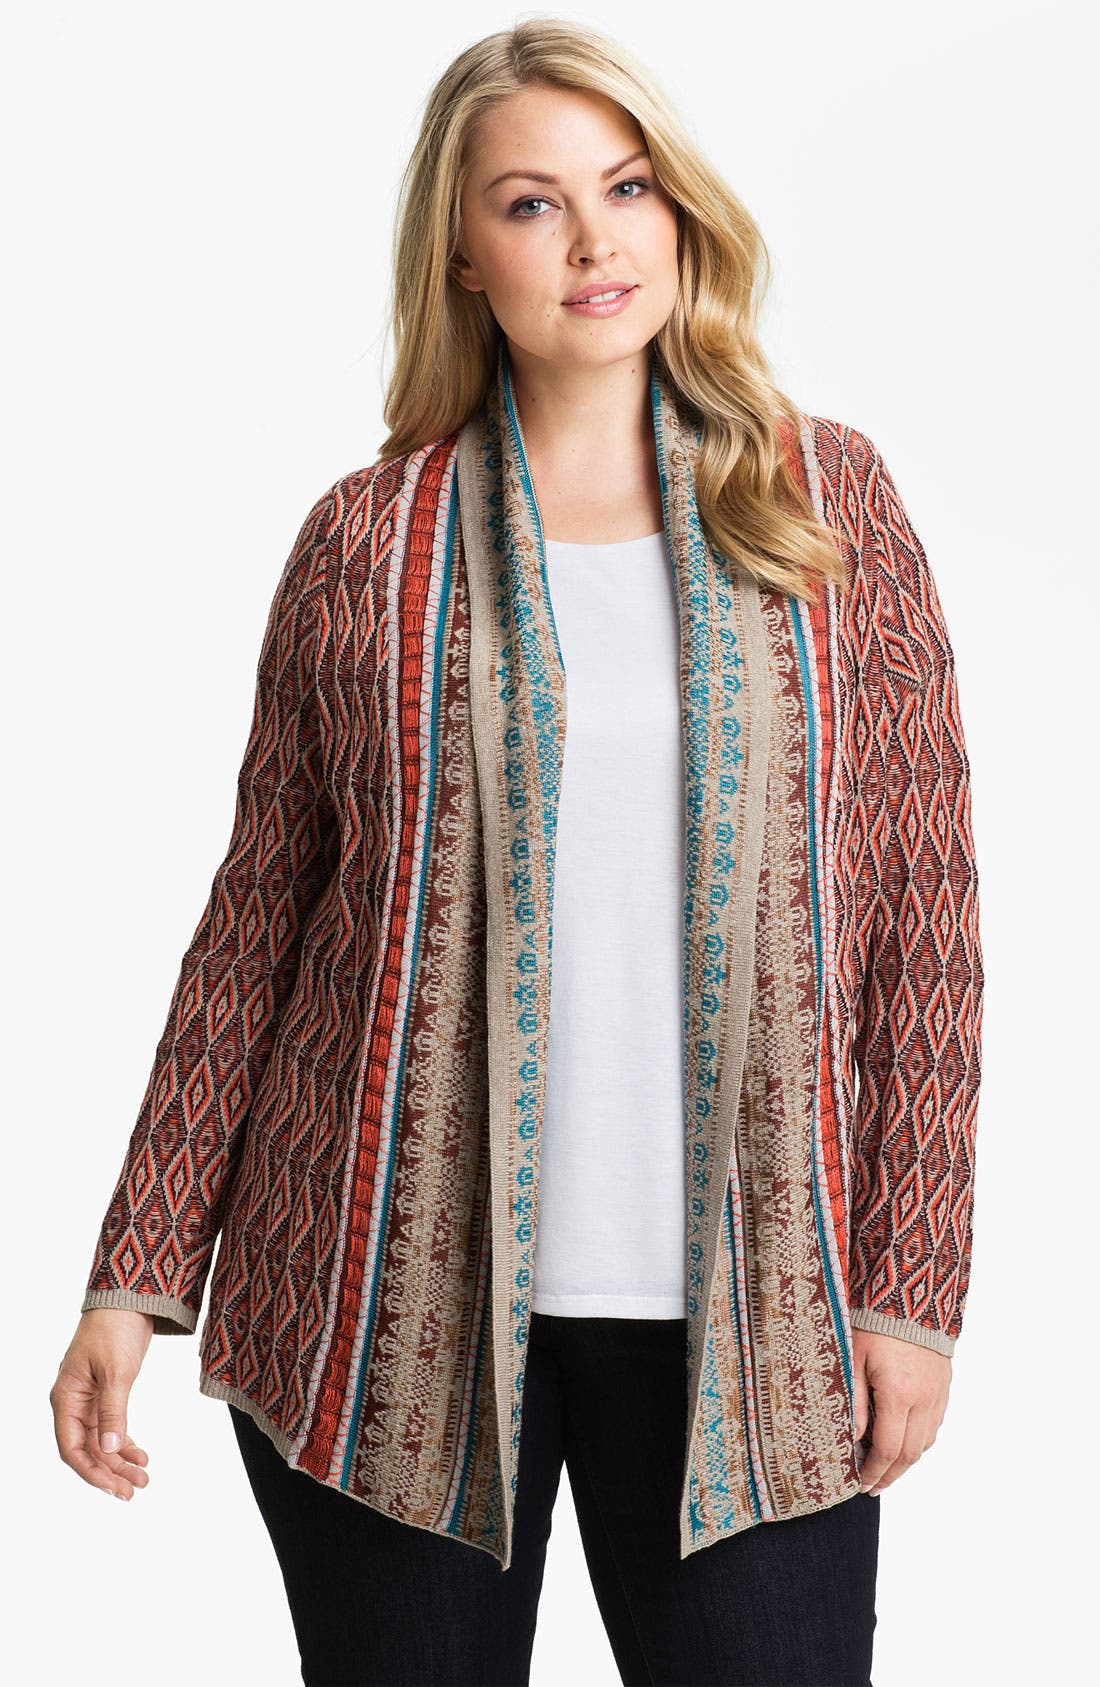 Alternate Image 1 Selected - Nic + Zoe Geo Print Cardigan (Plus)